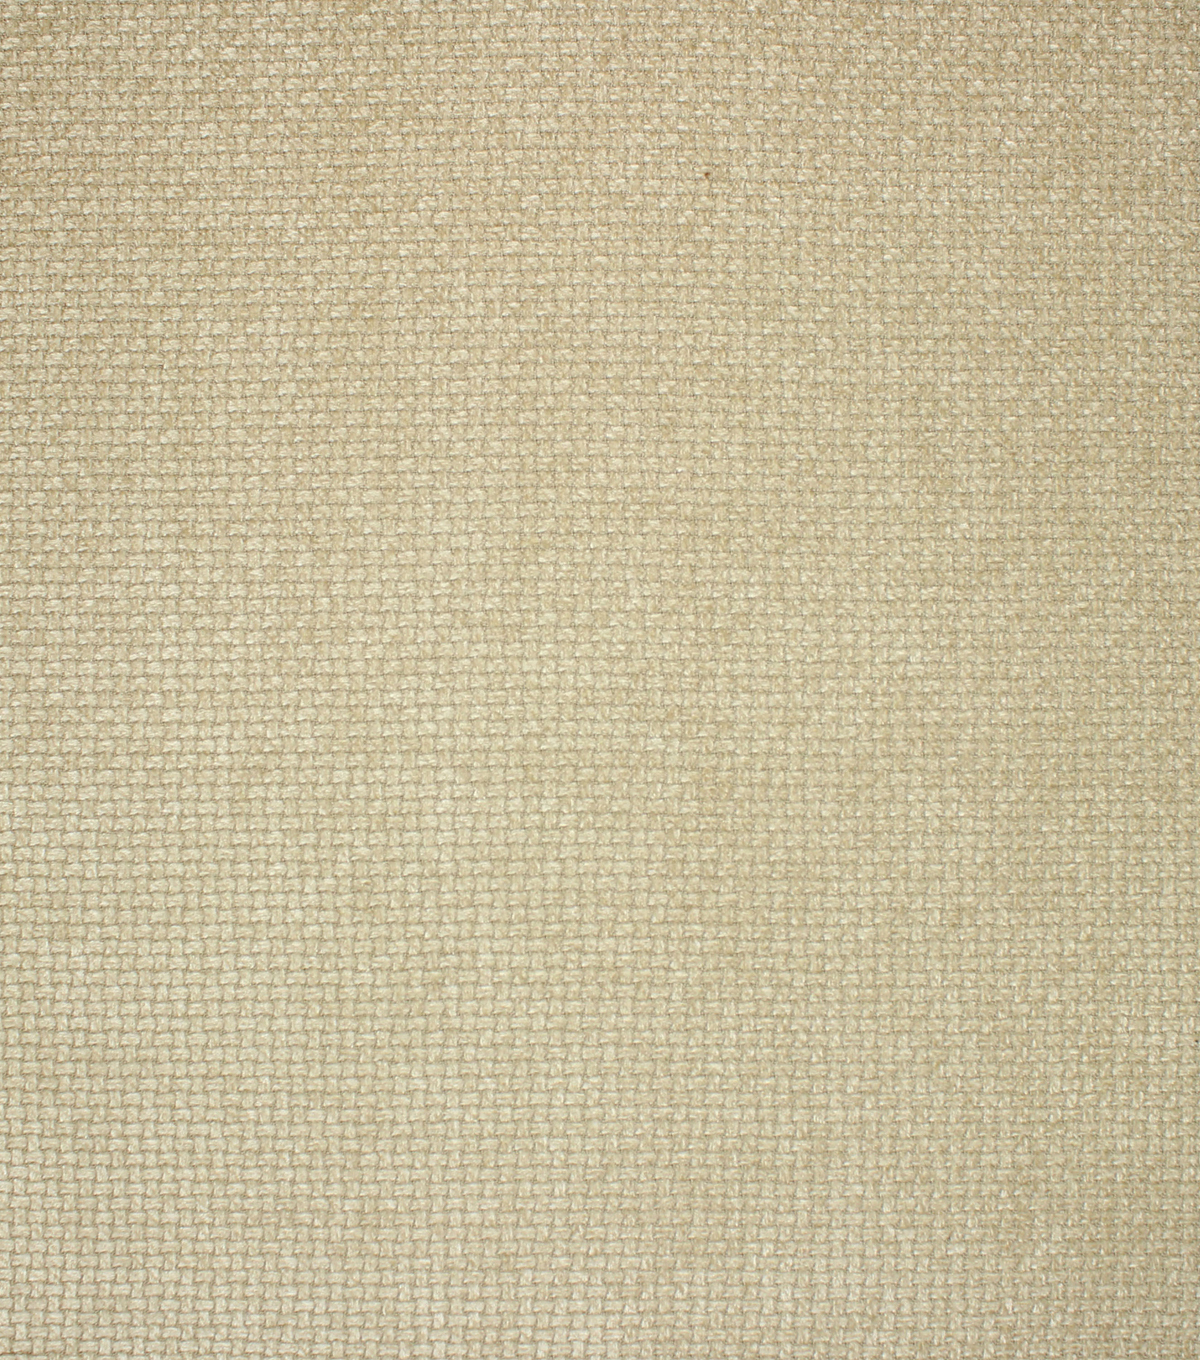 Home Decor 8\u0022x8\u0022 Fabric Swatch-Upholstery Fabric Barrow M8173-5804 Alabaster